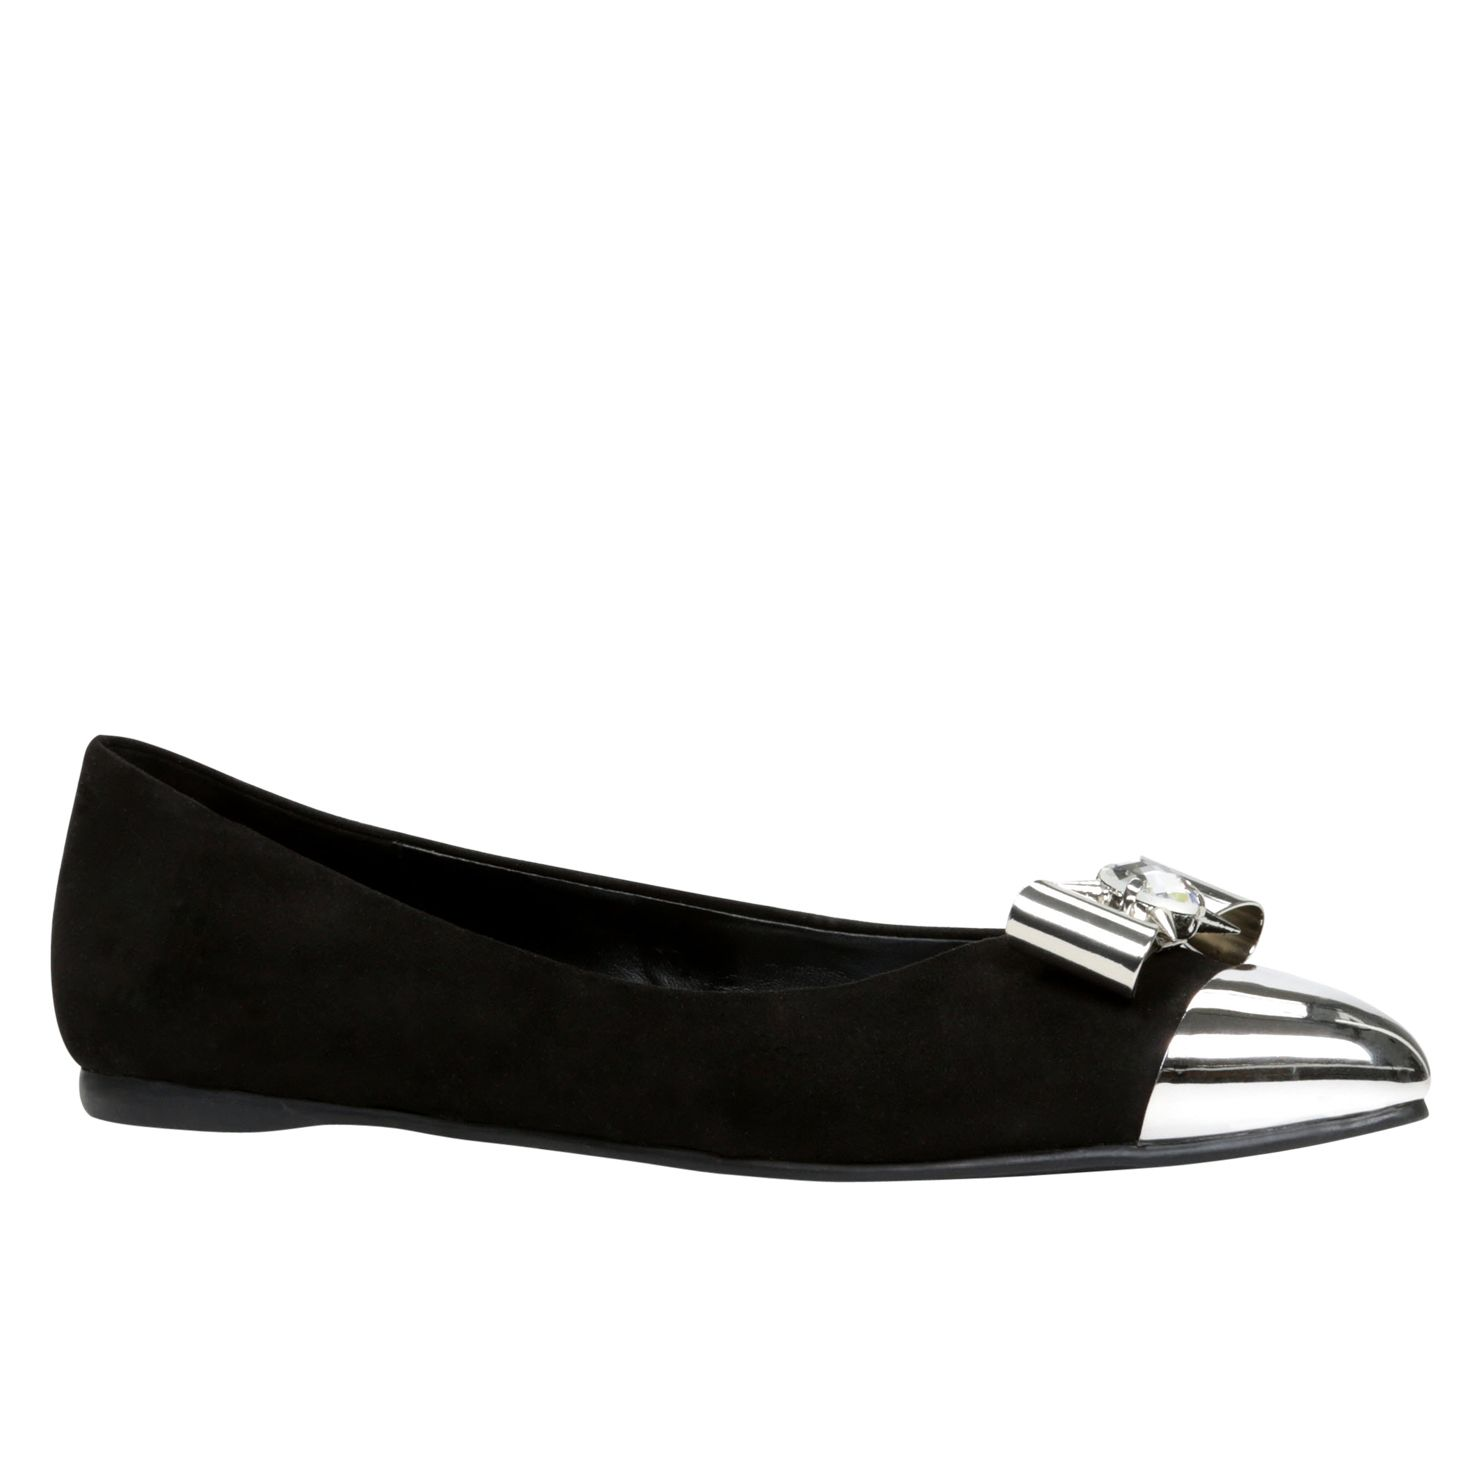 Zicia pointed toe ballerina shoes